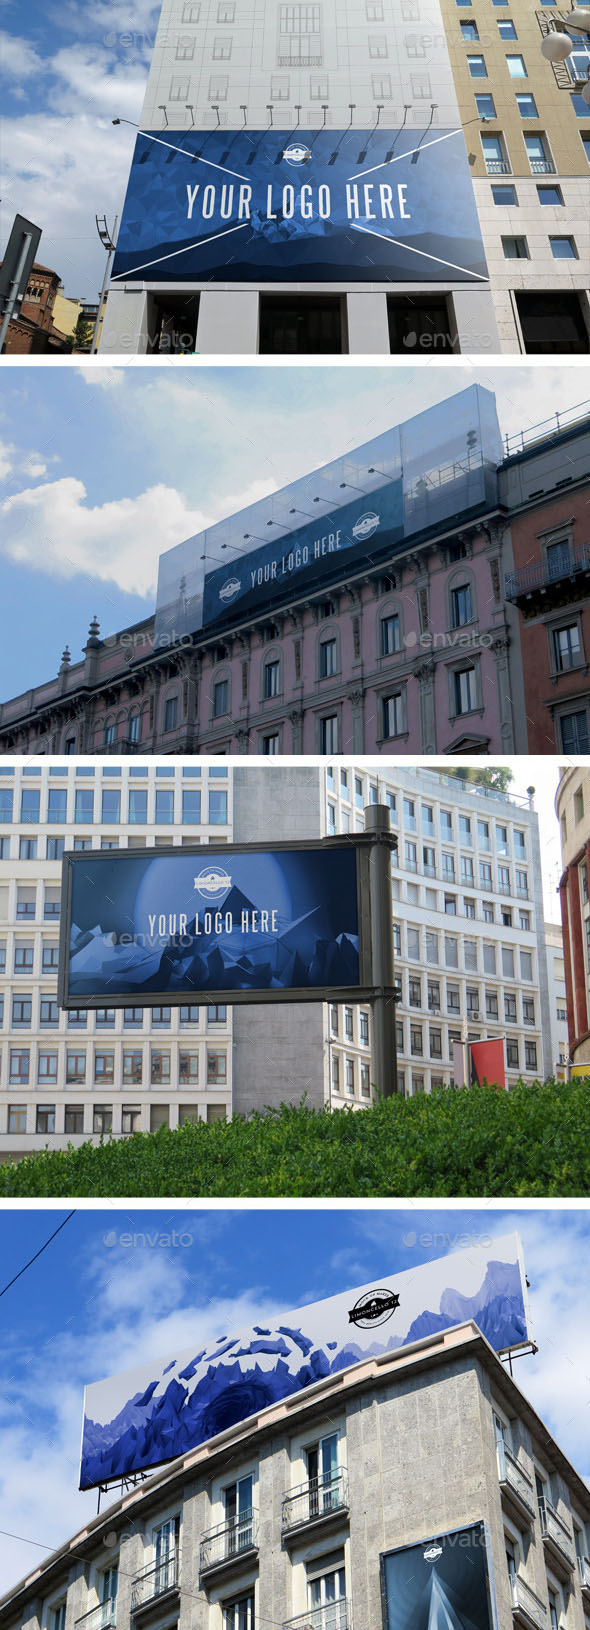 4 Photorealistic Outdoor Advertising Mockups